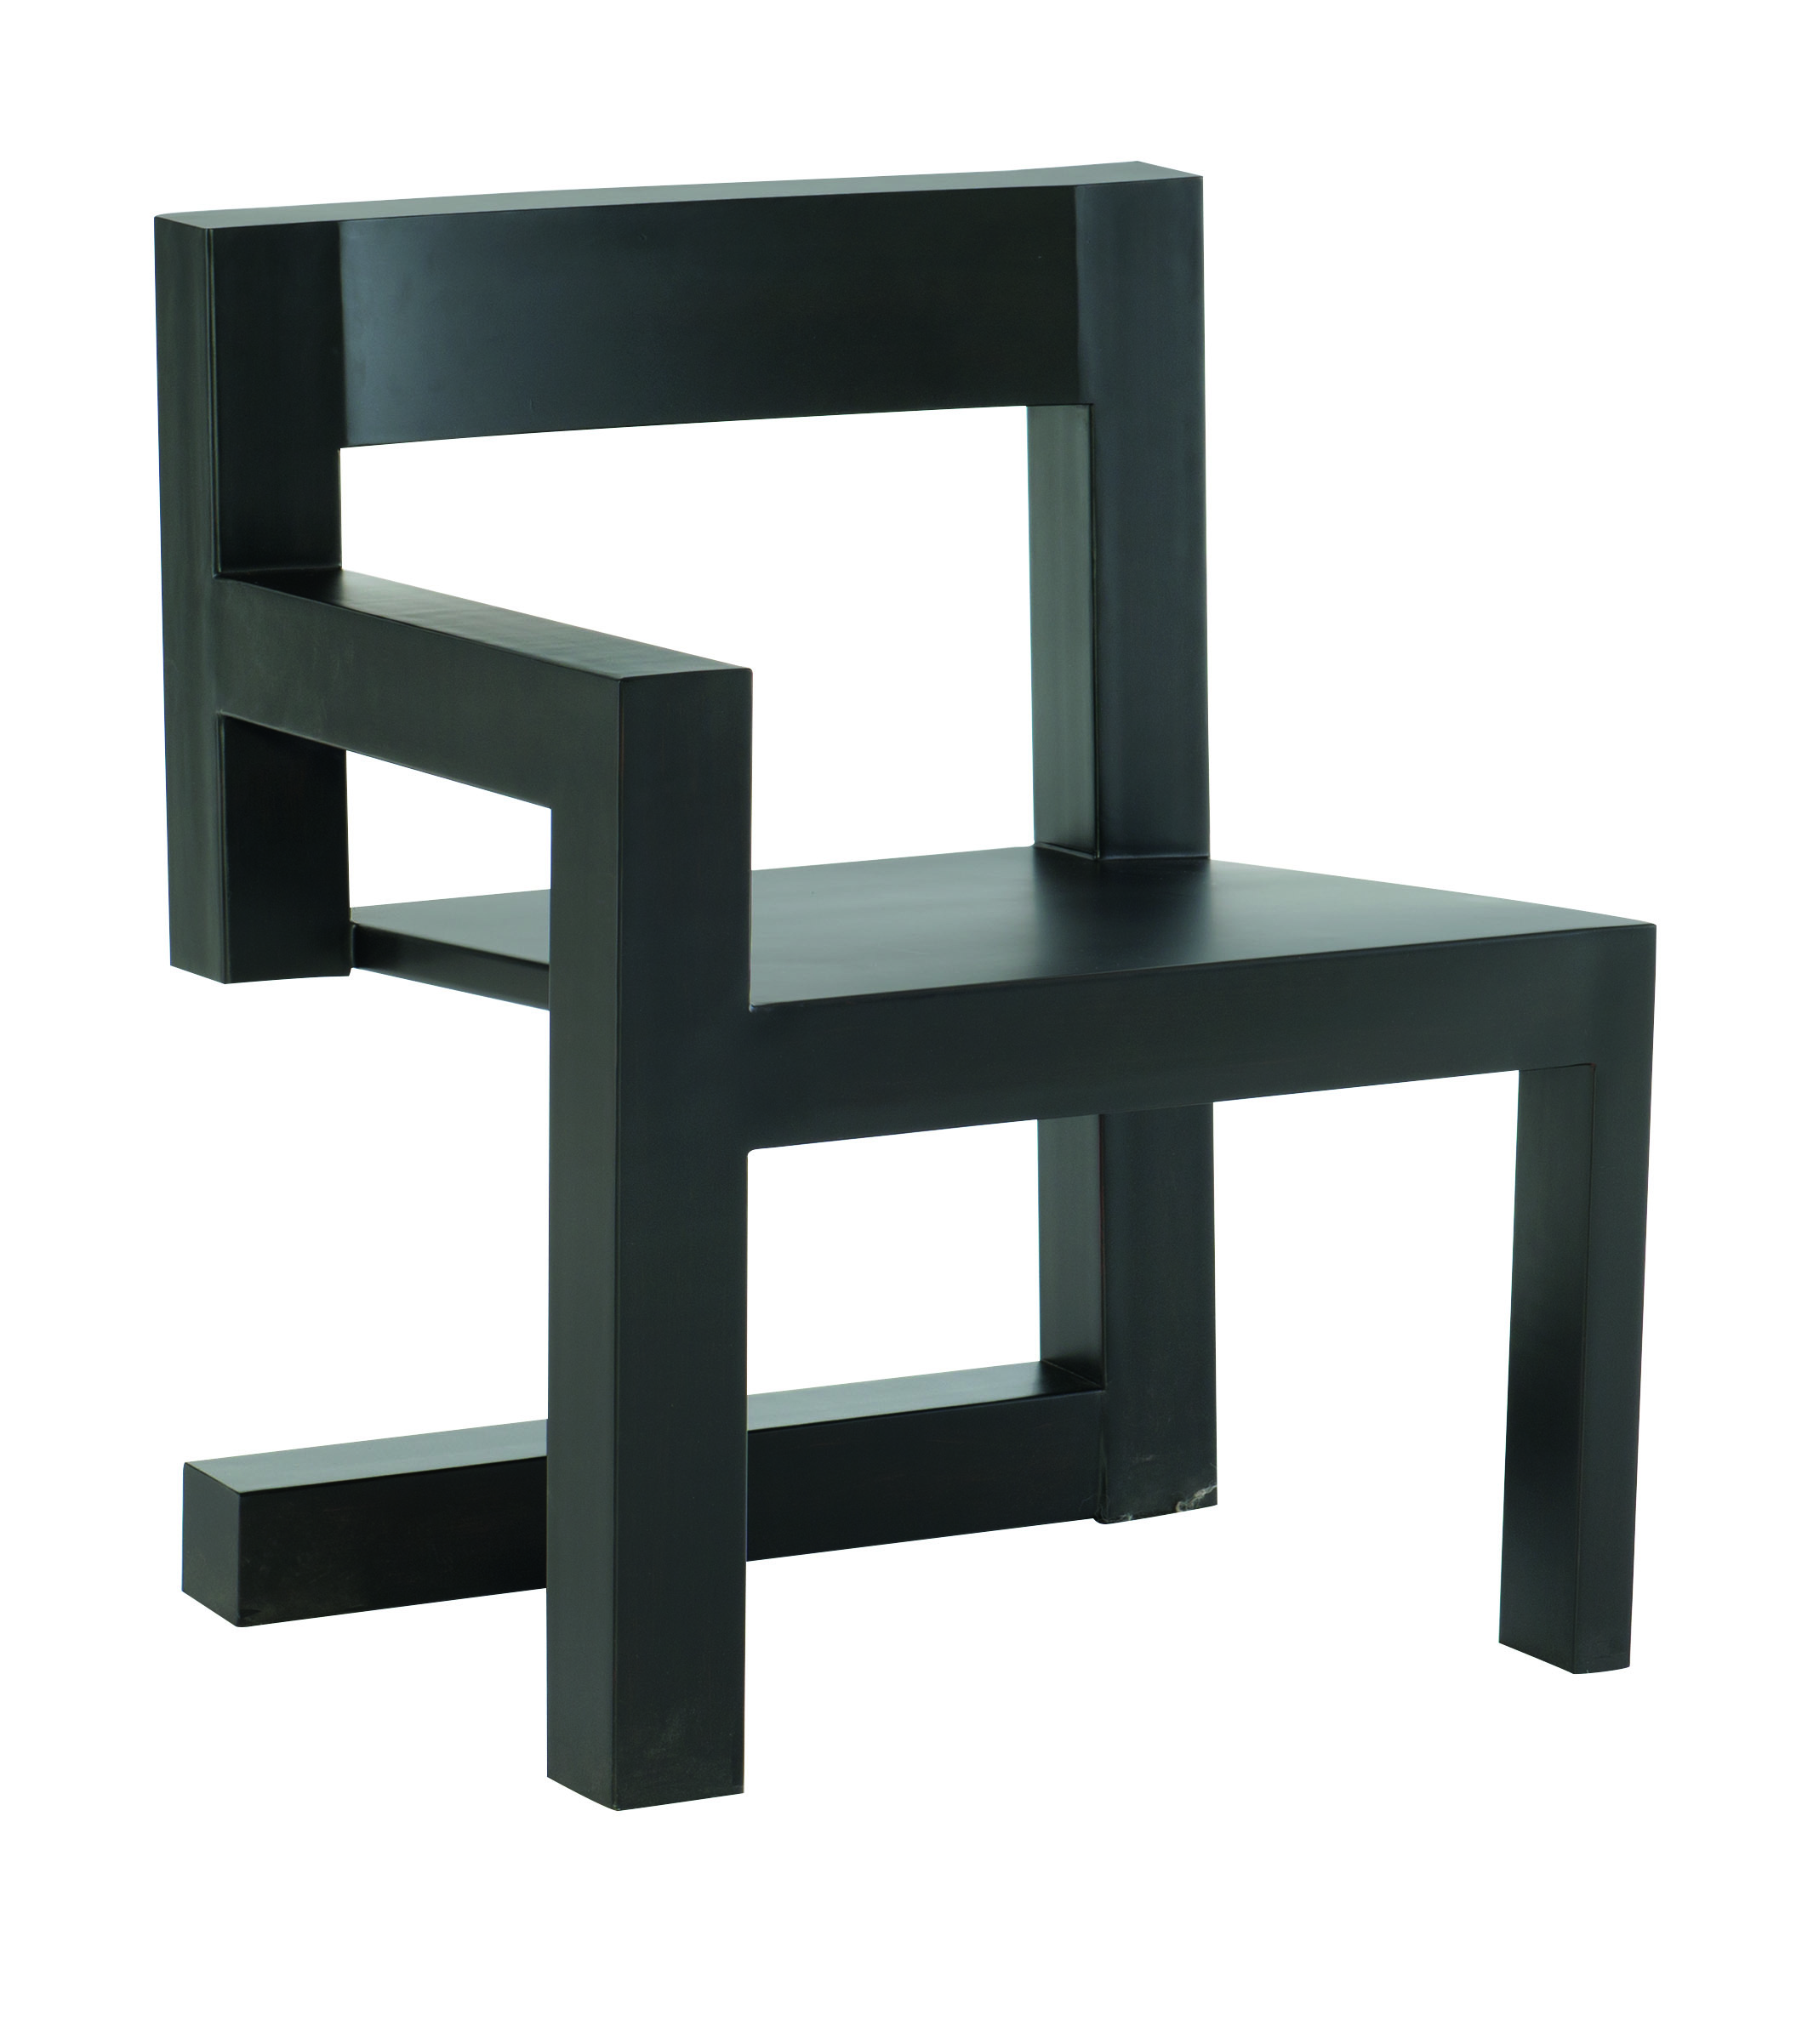 black chair inspired by De Stijl movement